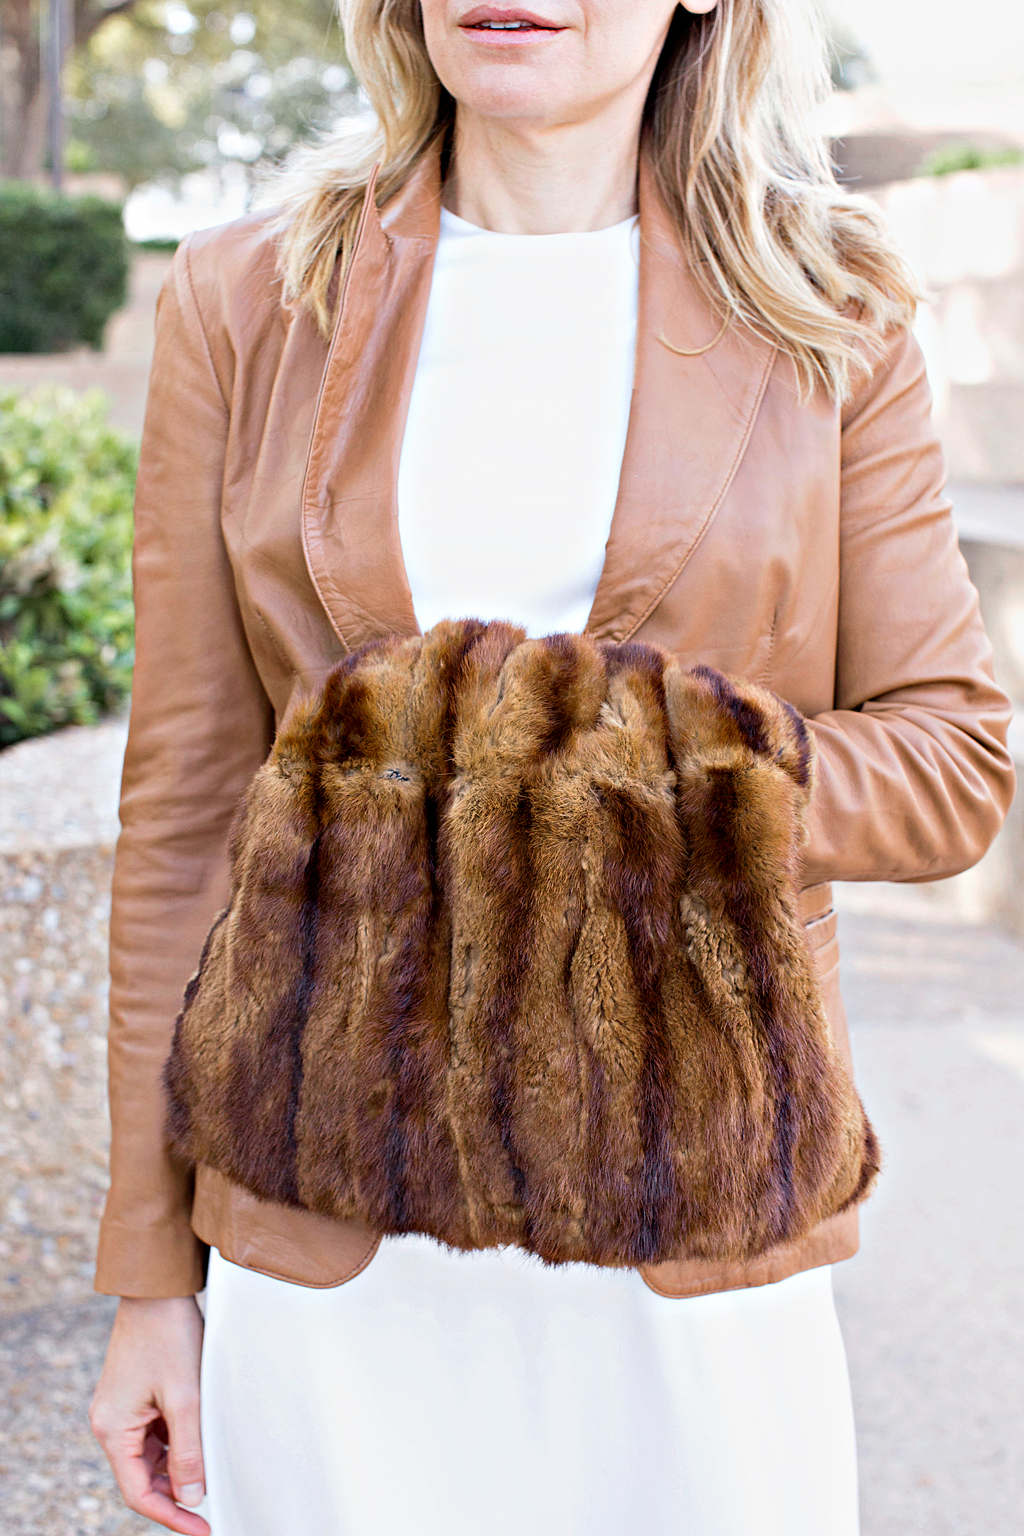 Investment Piece, fashion blogger, non wedding, mink, vintage, high fashion, Asos, Megan Weaver, CA, TX